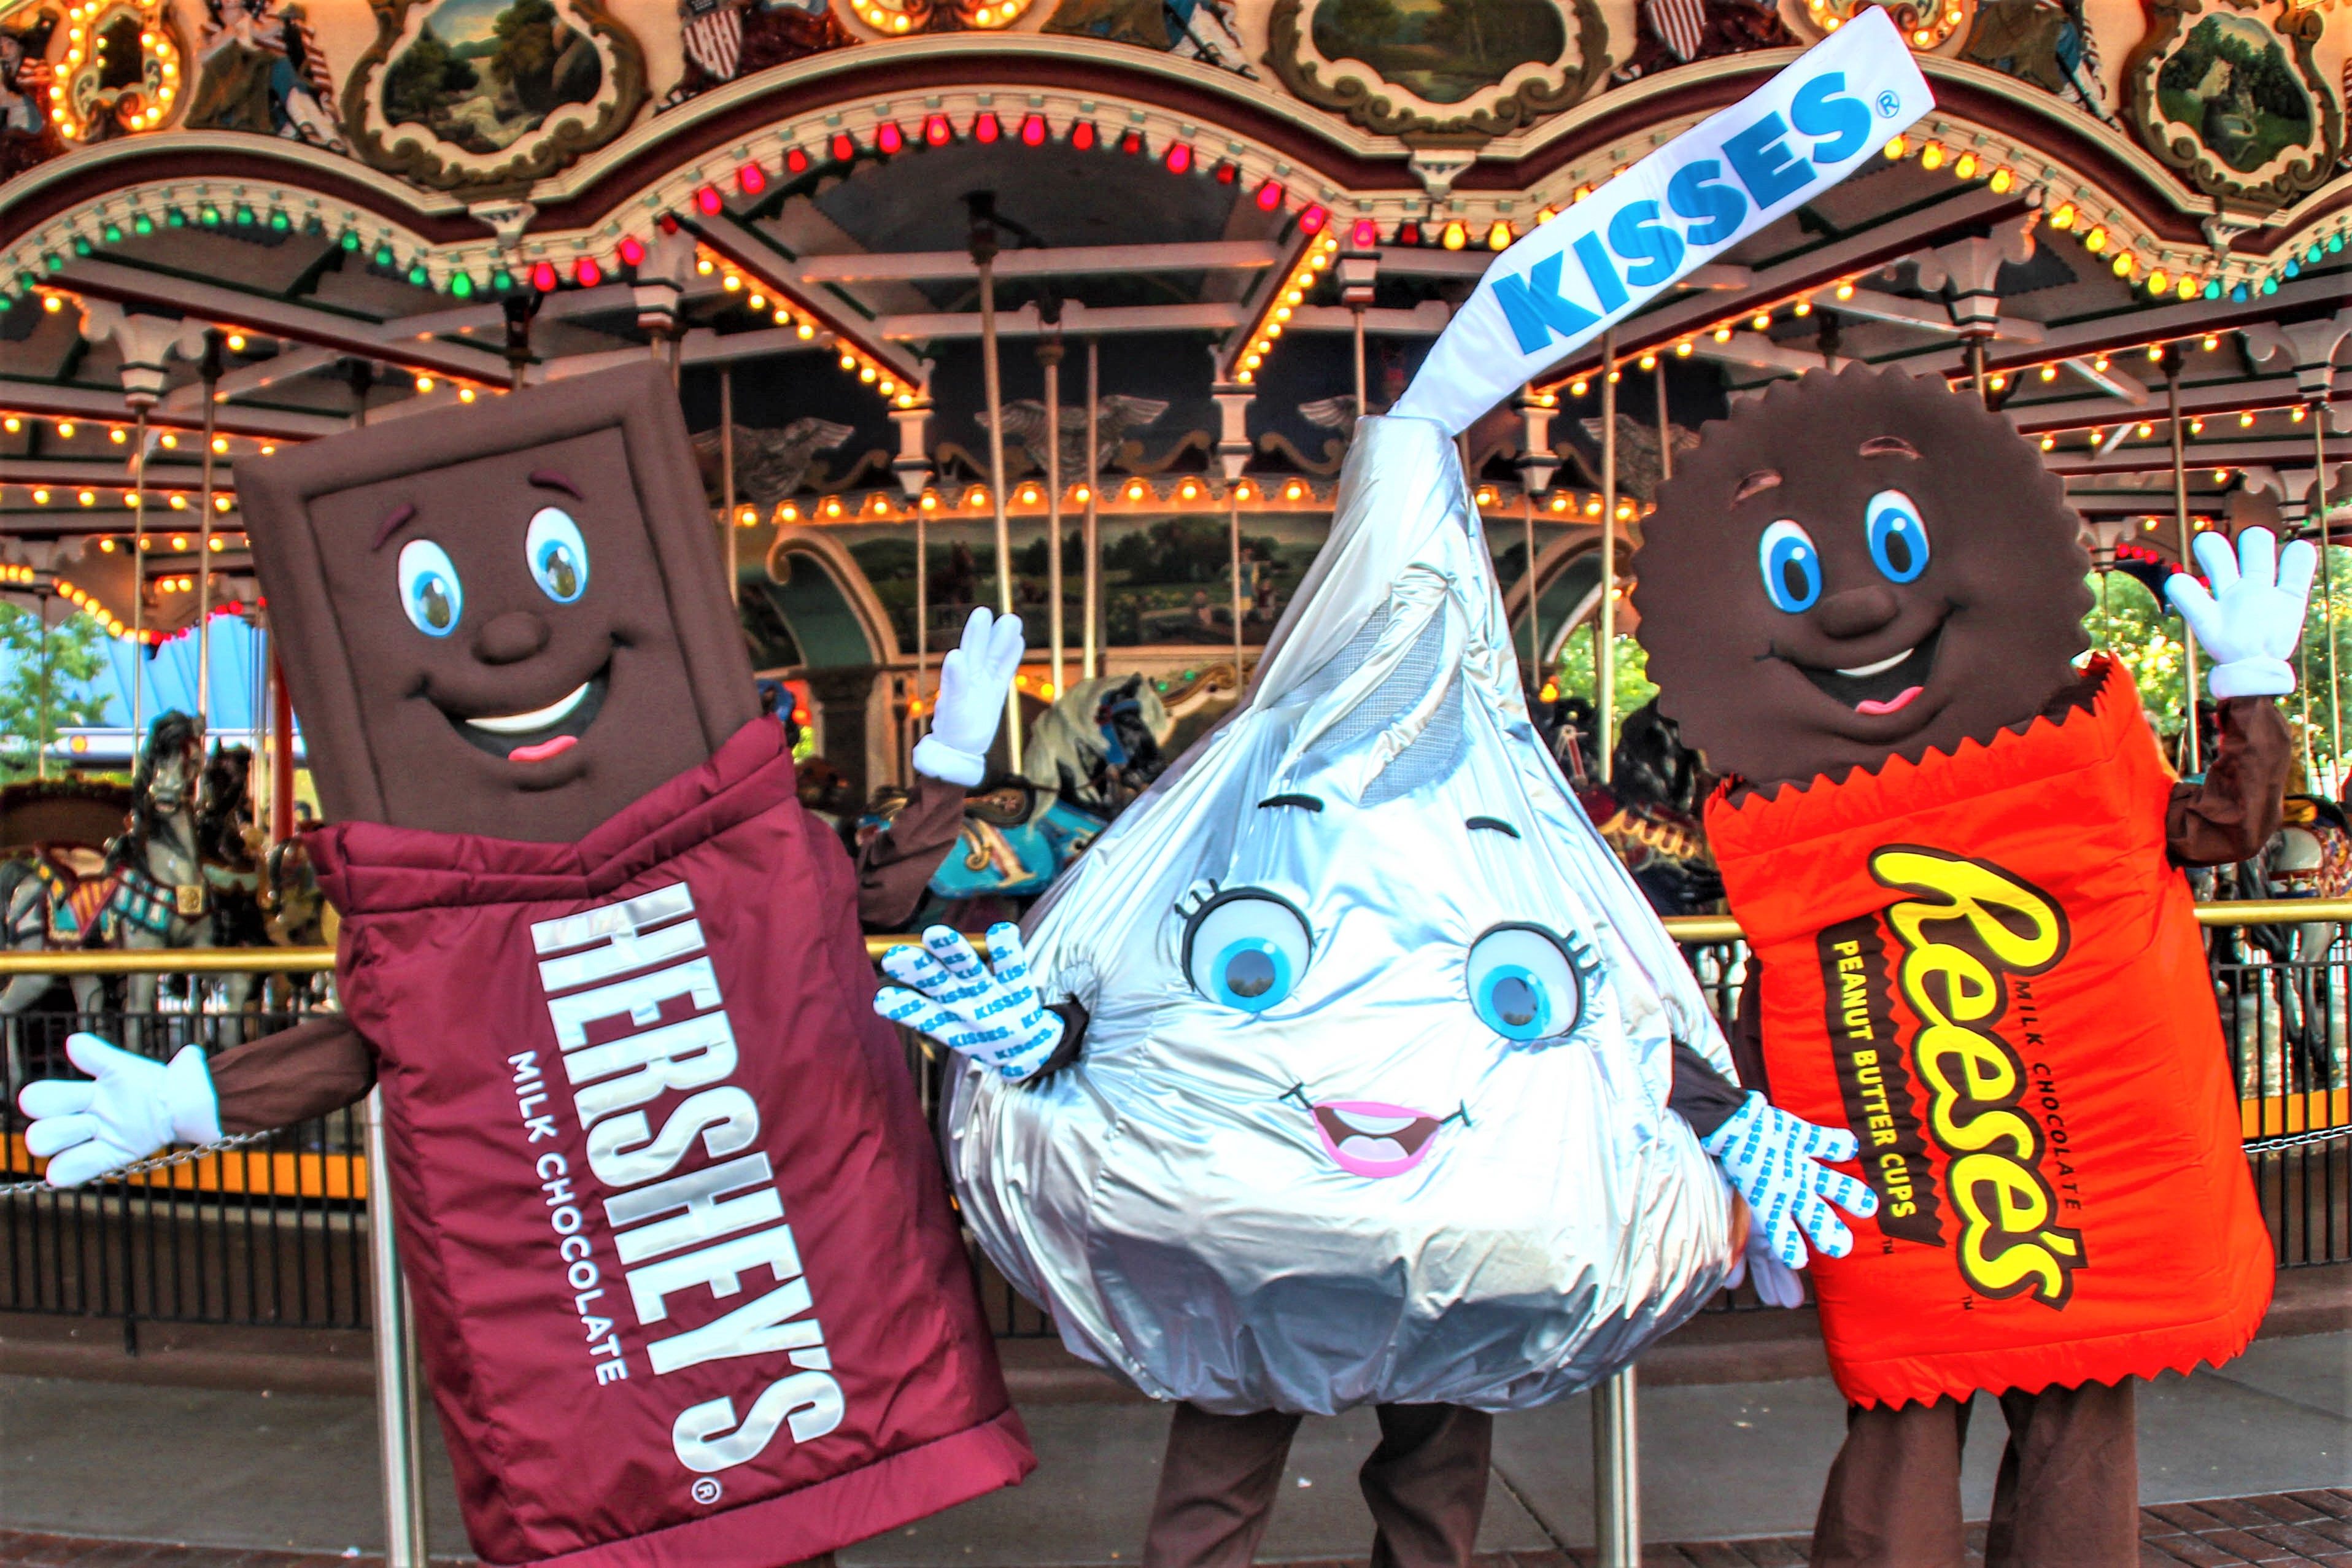 What New and Fun Things To Do & Eat in HersheyPark- Hershey, Pa.? Visiting Hershey Park and need ideas on what to do? Be ready for a #SweetWelcome